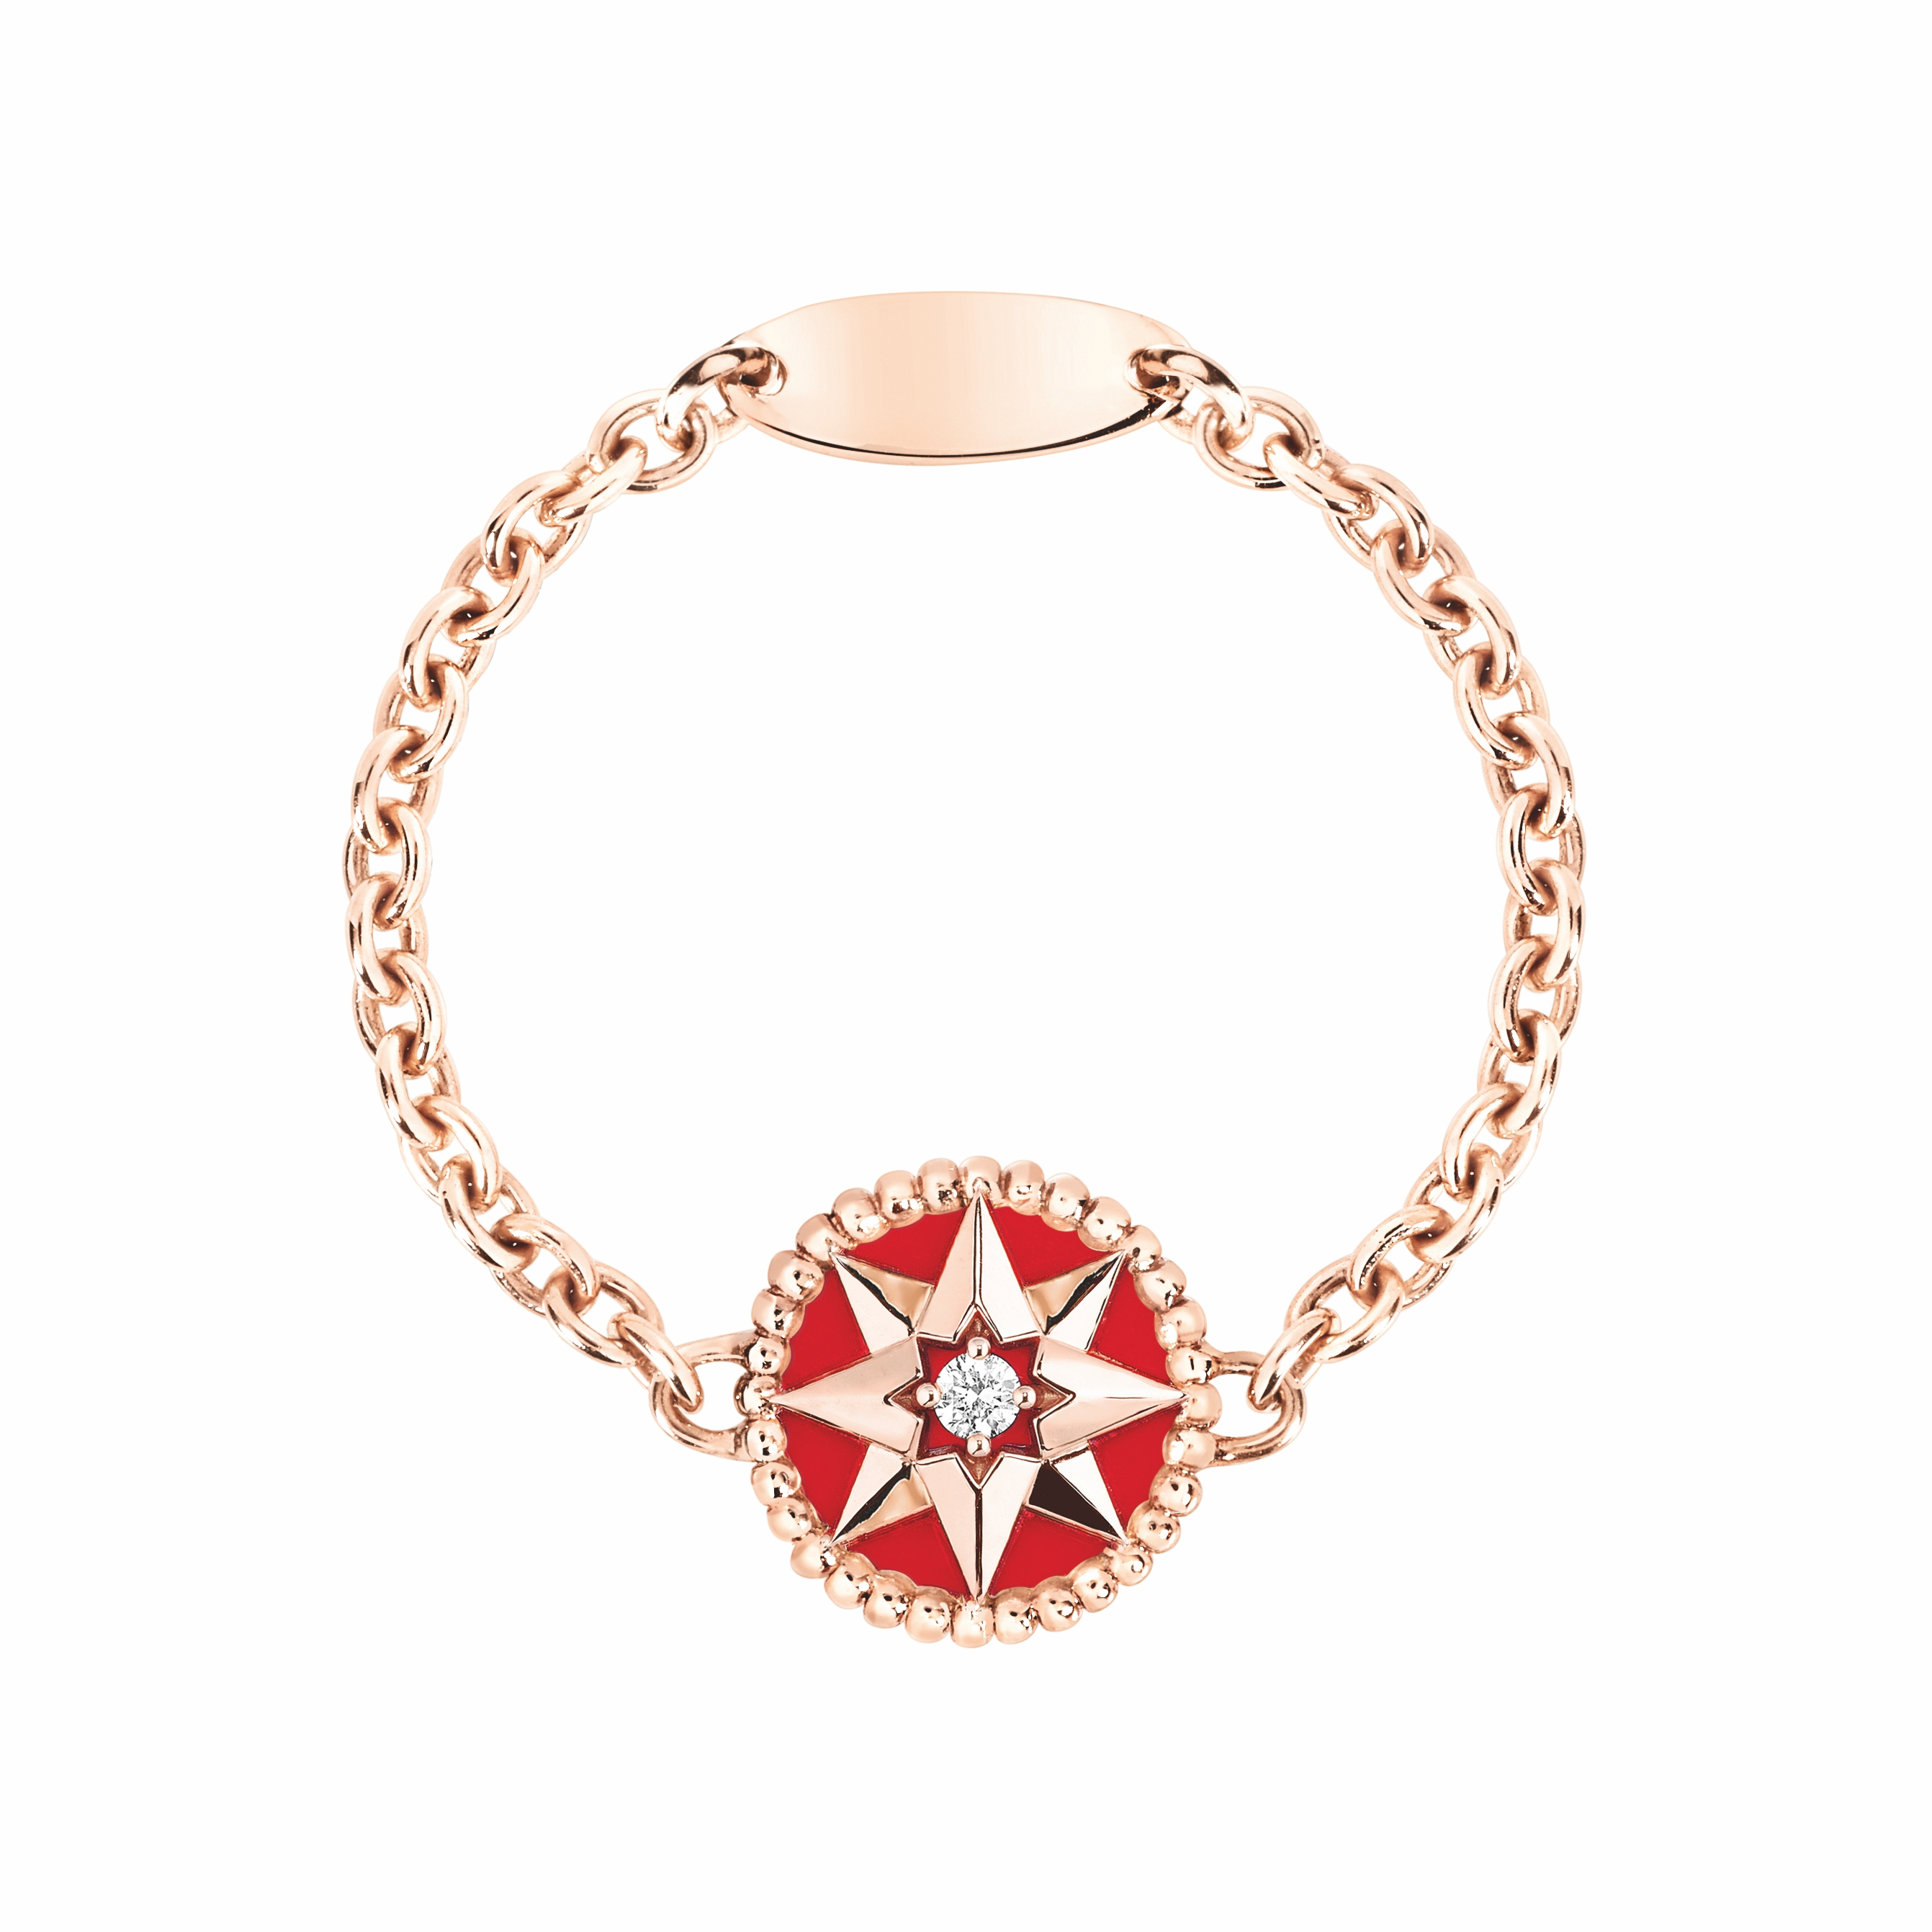 c7470c067e 5 Novelty Dior Rose Des Vents Jewellery Pieces To Pick Up